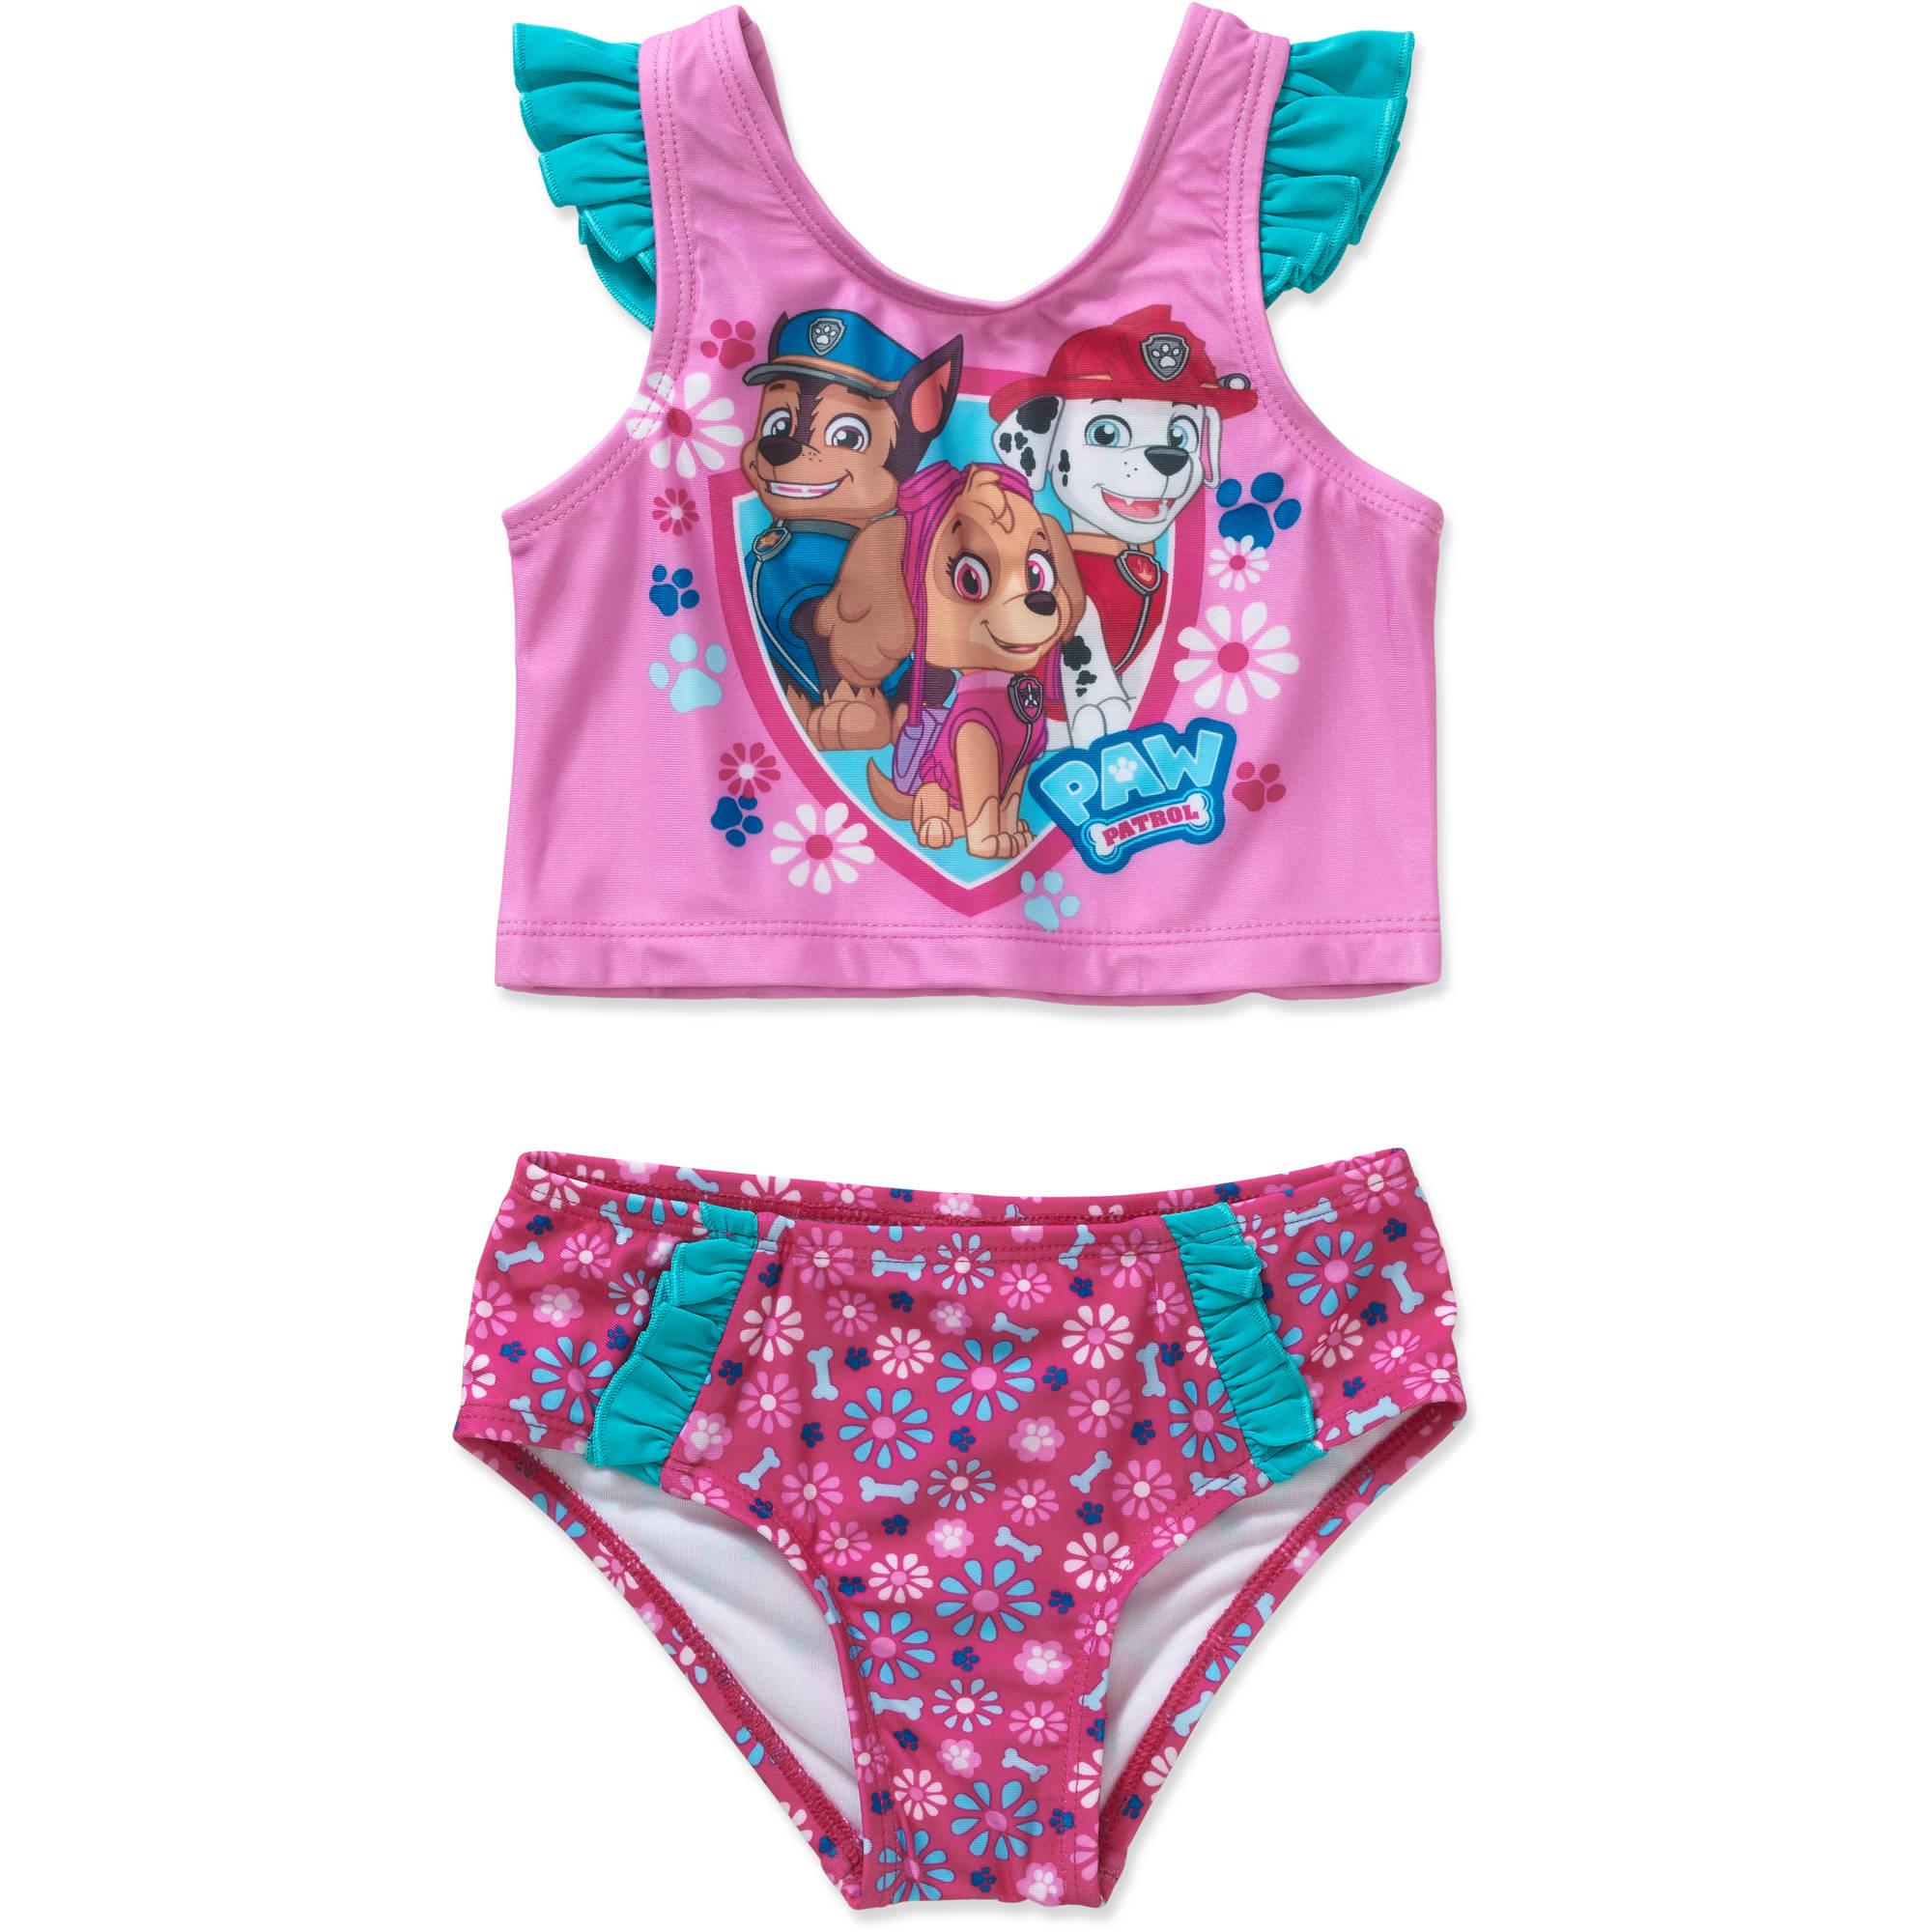 Chase, Skye, and Everest Toddler Girl Tankini Swimsuit